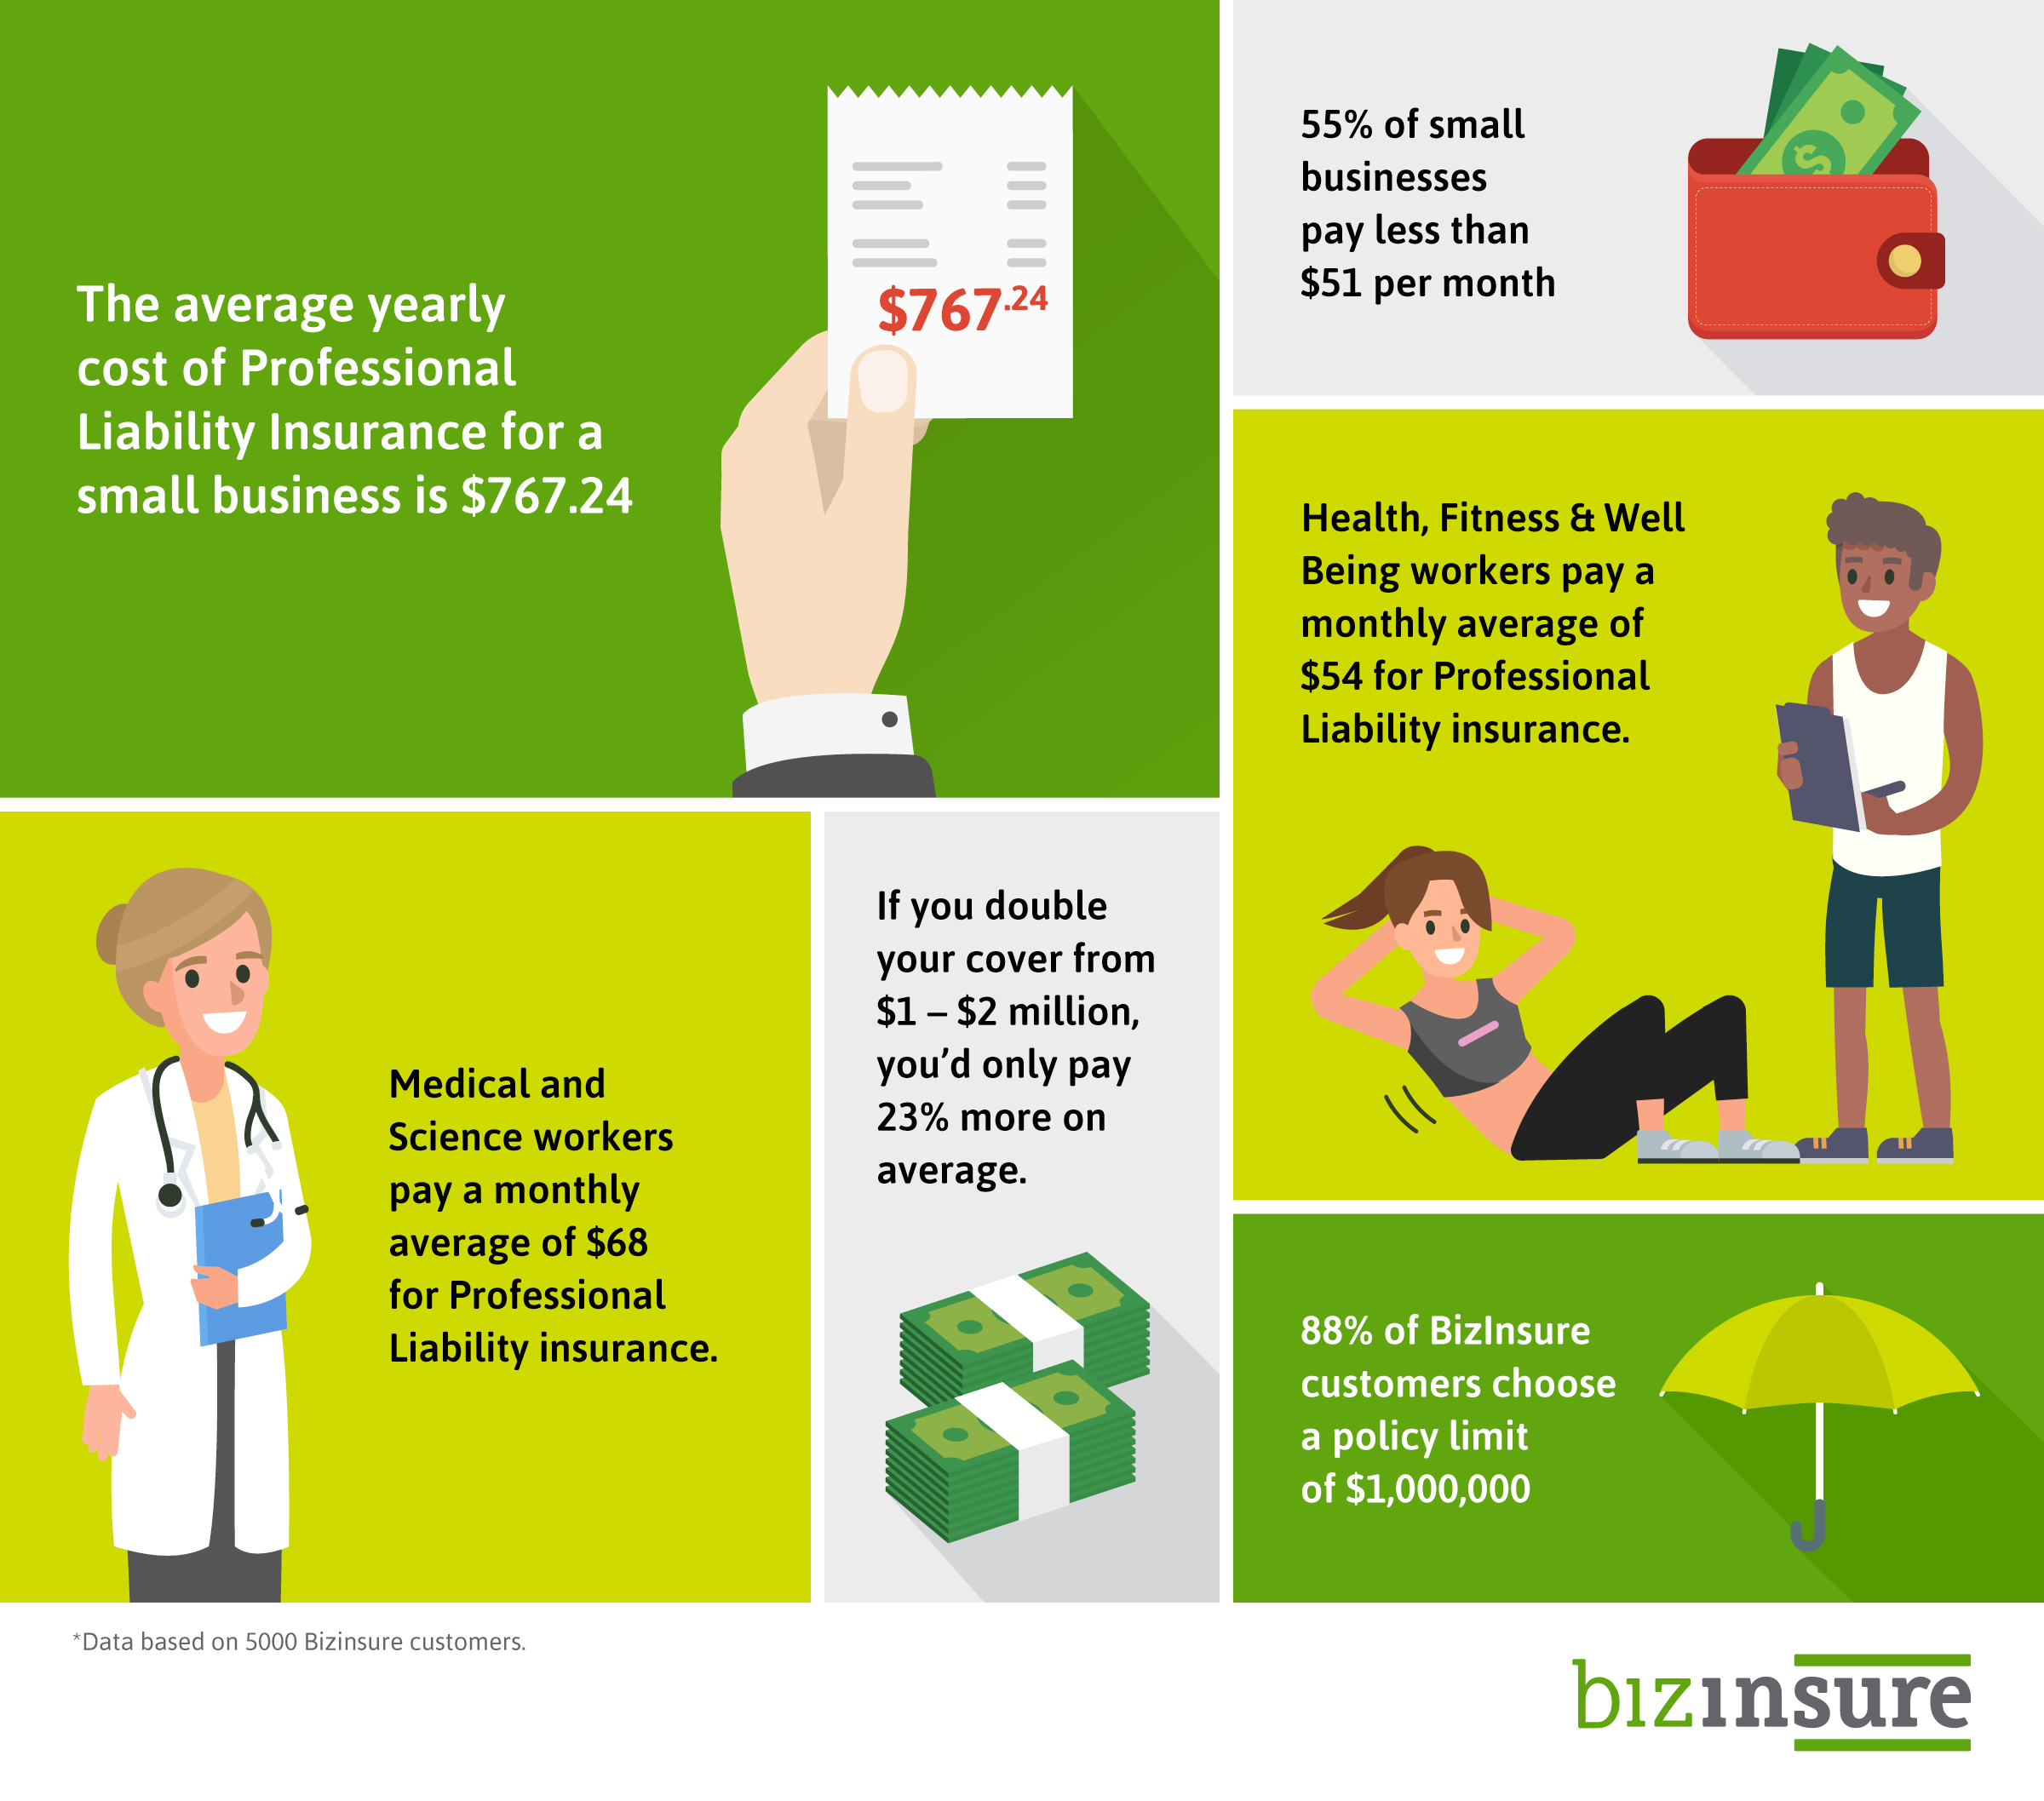 Professional Liability Insurance Cost Infographic